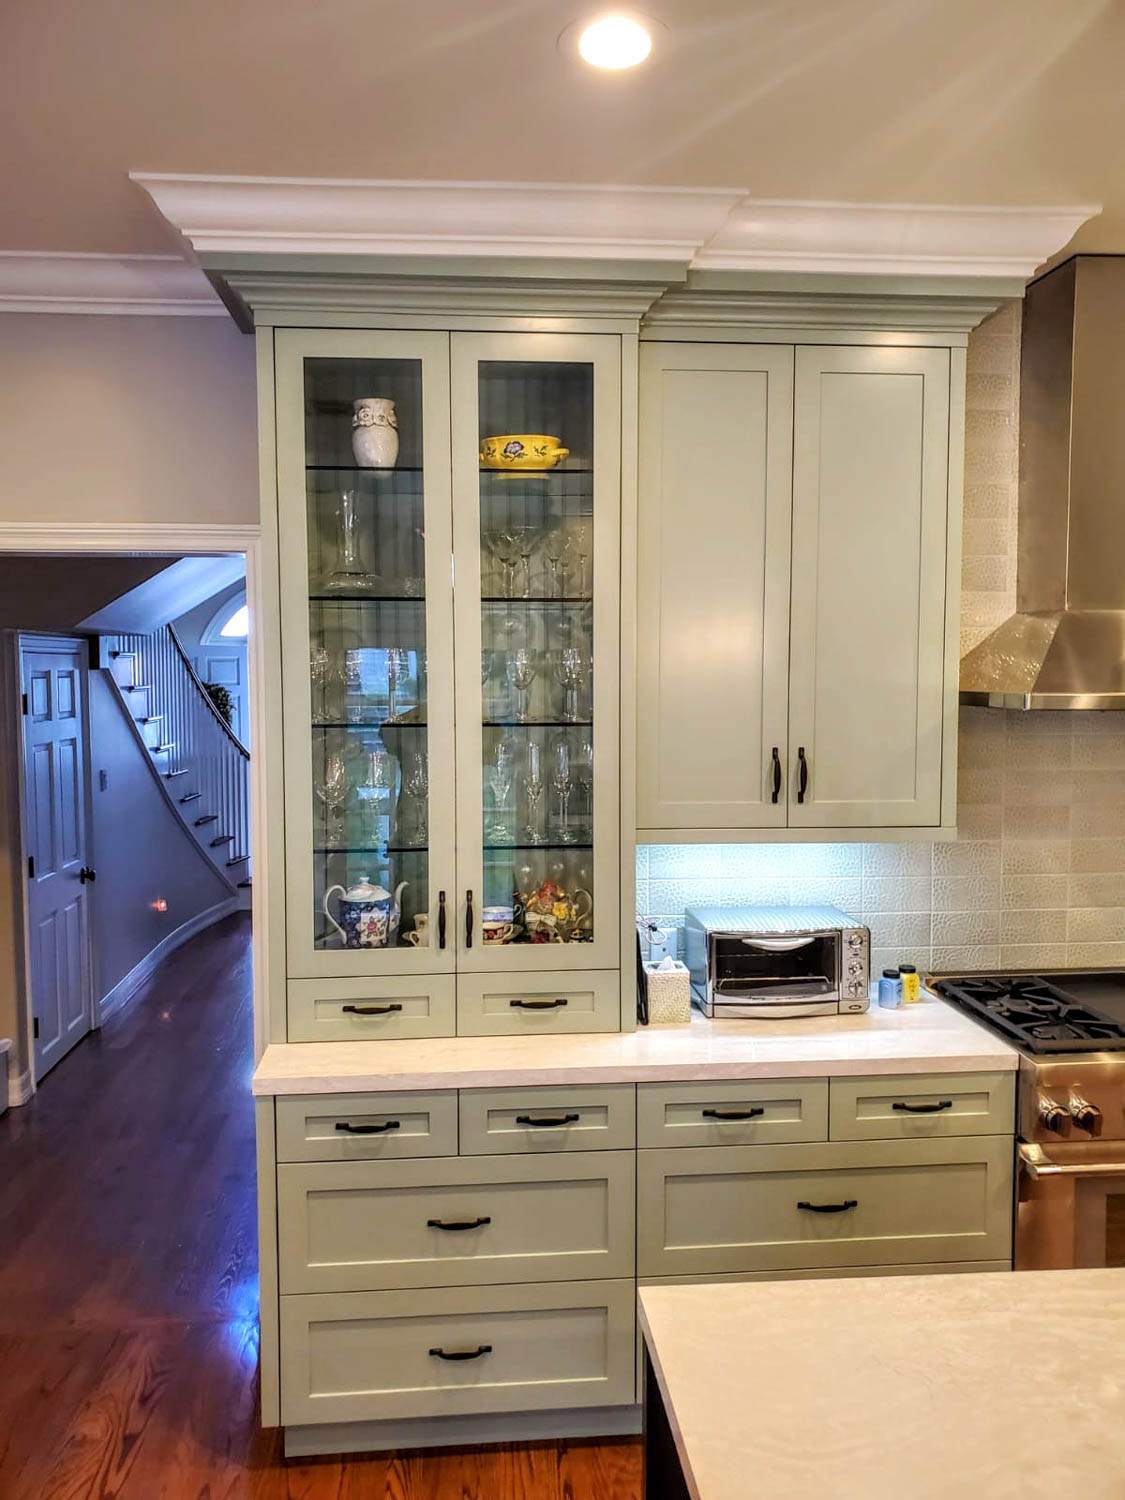 Fitucci Custom Cabinets - Los Angeles - frontal view of custom kitchen cabinet